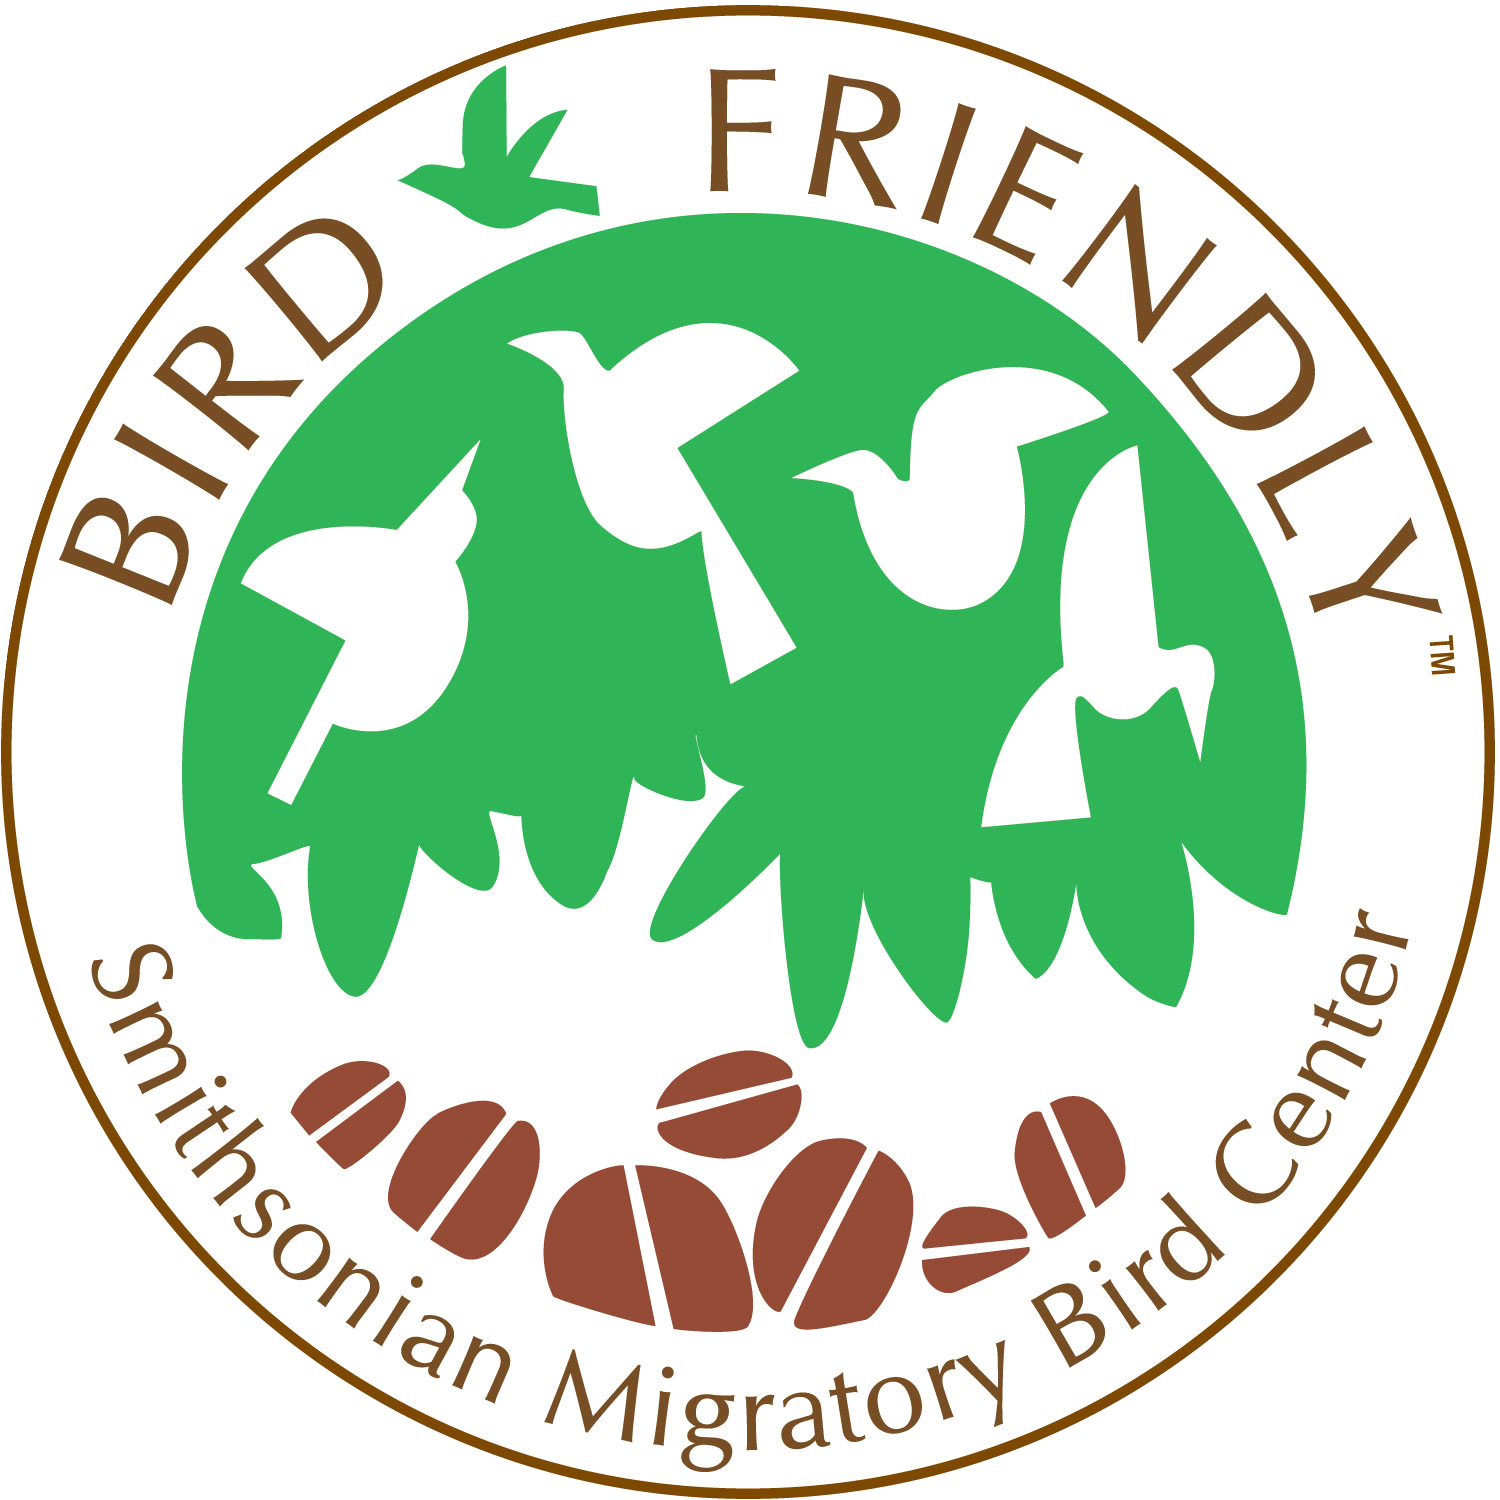 [Bird Friendly logo]